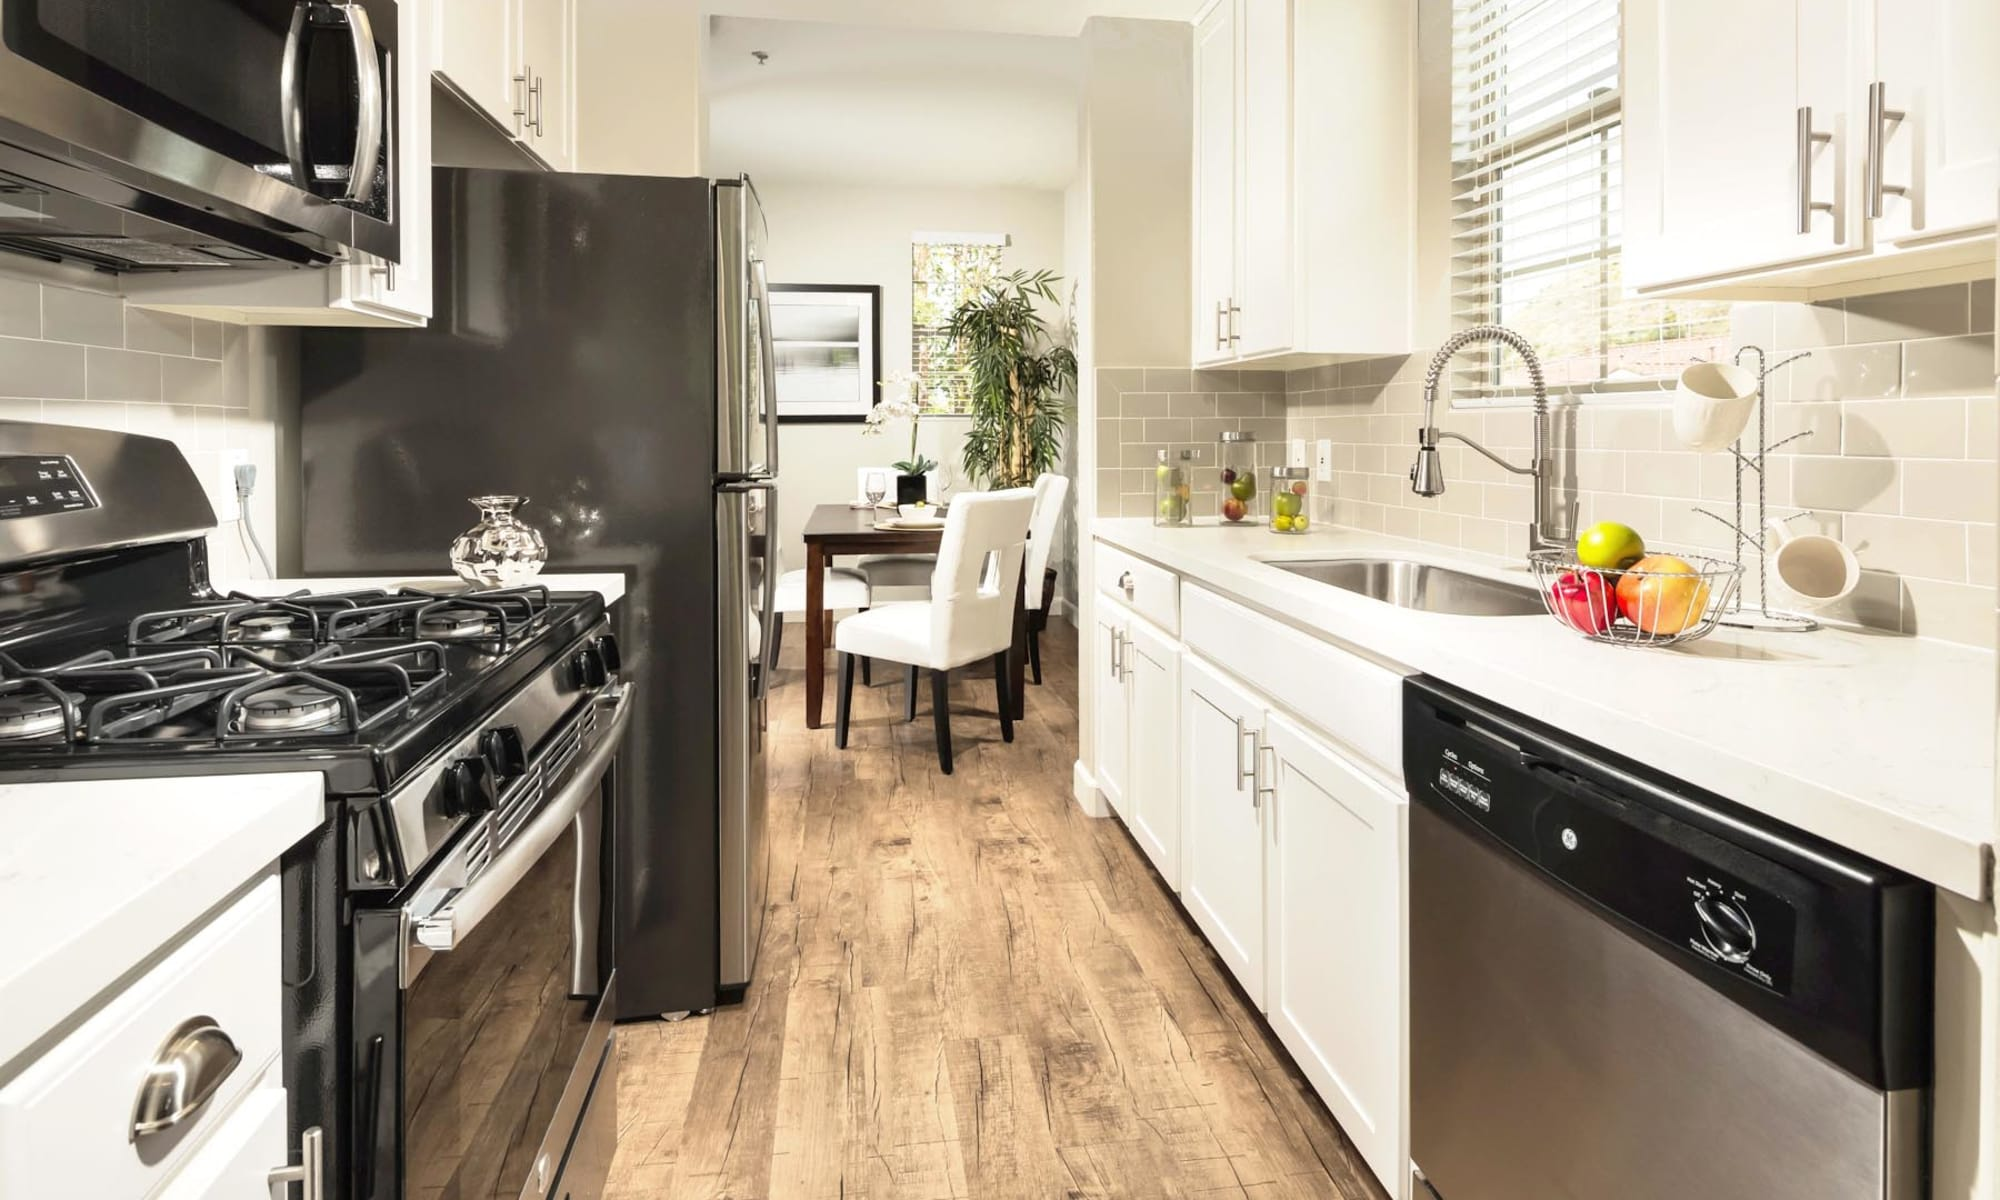 Bright kitchen with stainlesss-steeel appliances at Mission Hills in Camarillo, California